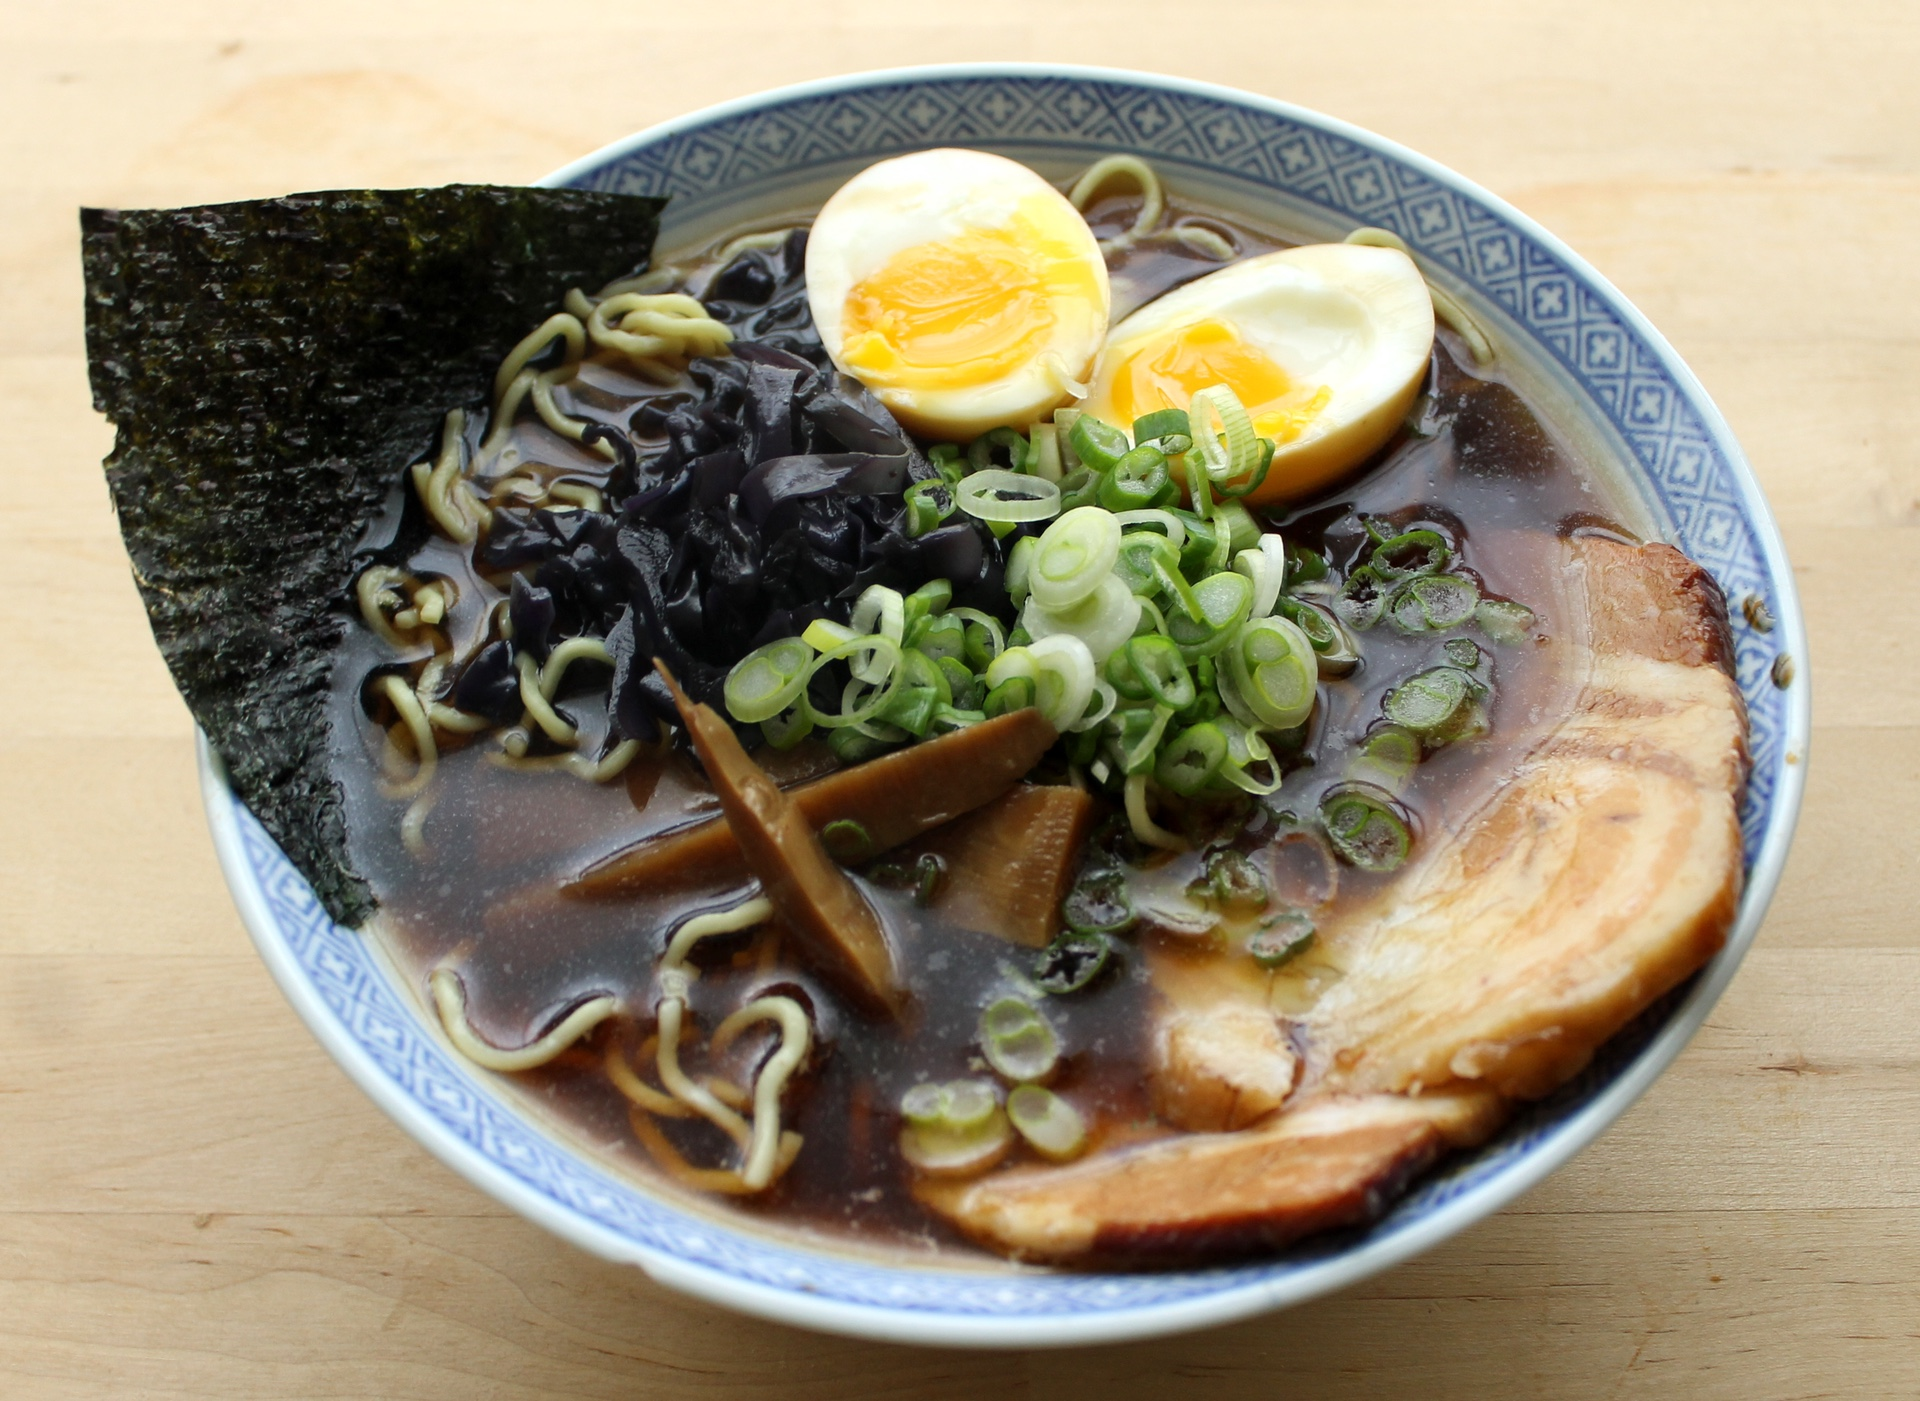 Homemade shoyu ramen with chashu, soy eggs, menma, cabbage, scallions, and nori.